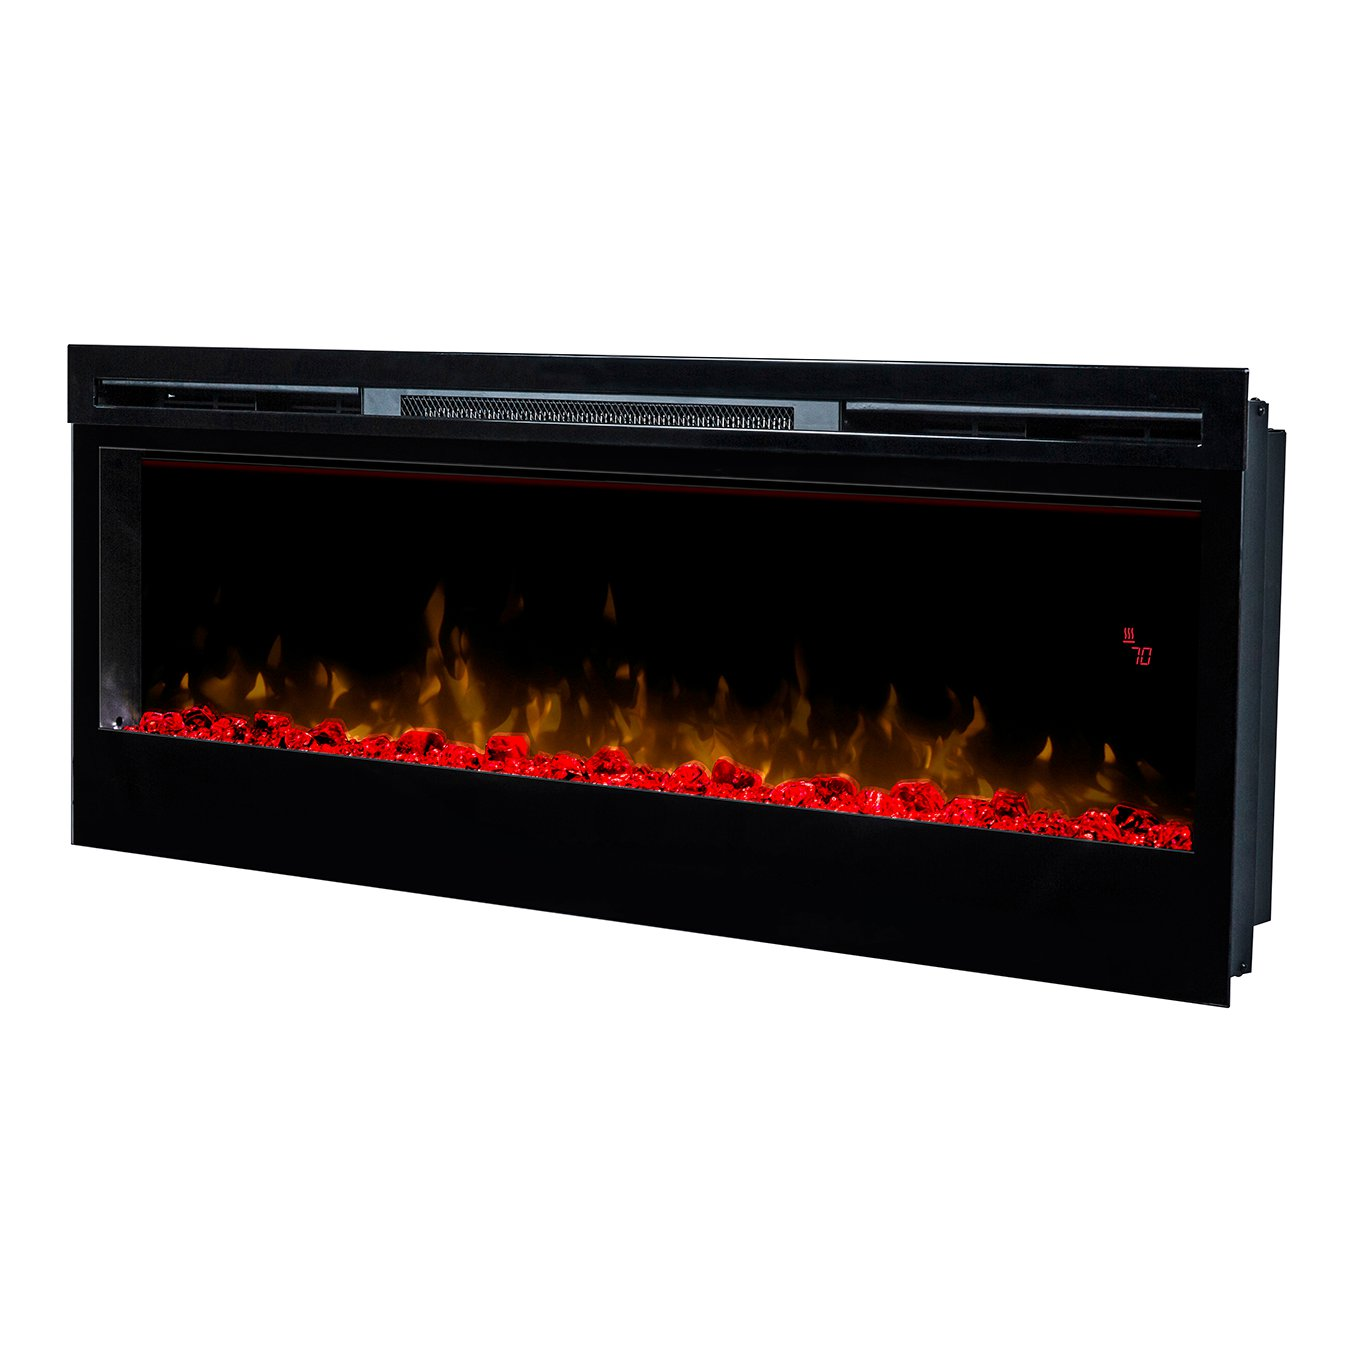 Dimplex 50 Prism Electric Fireplace Wall Mount Blf5051 Electric Fireplaces